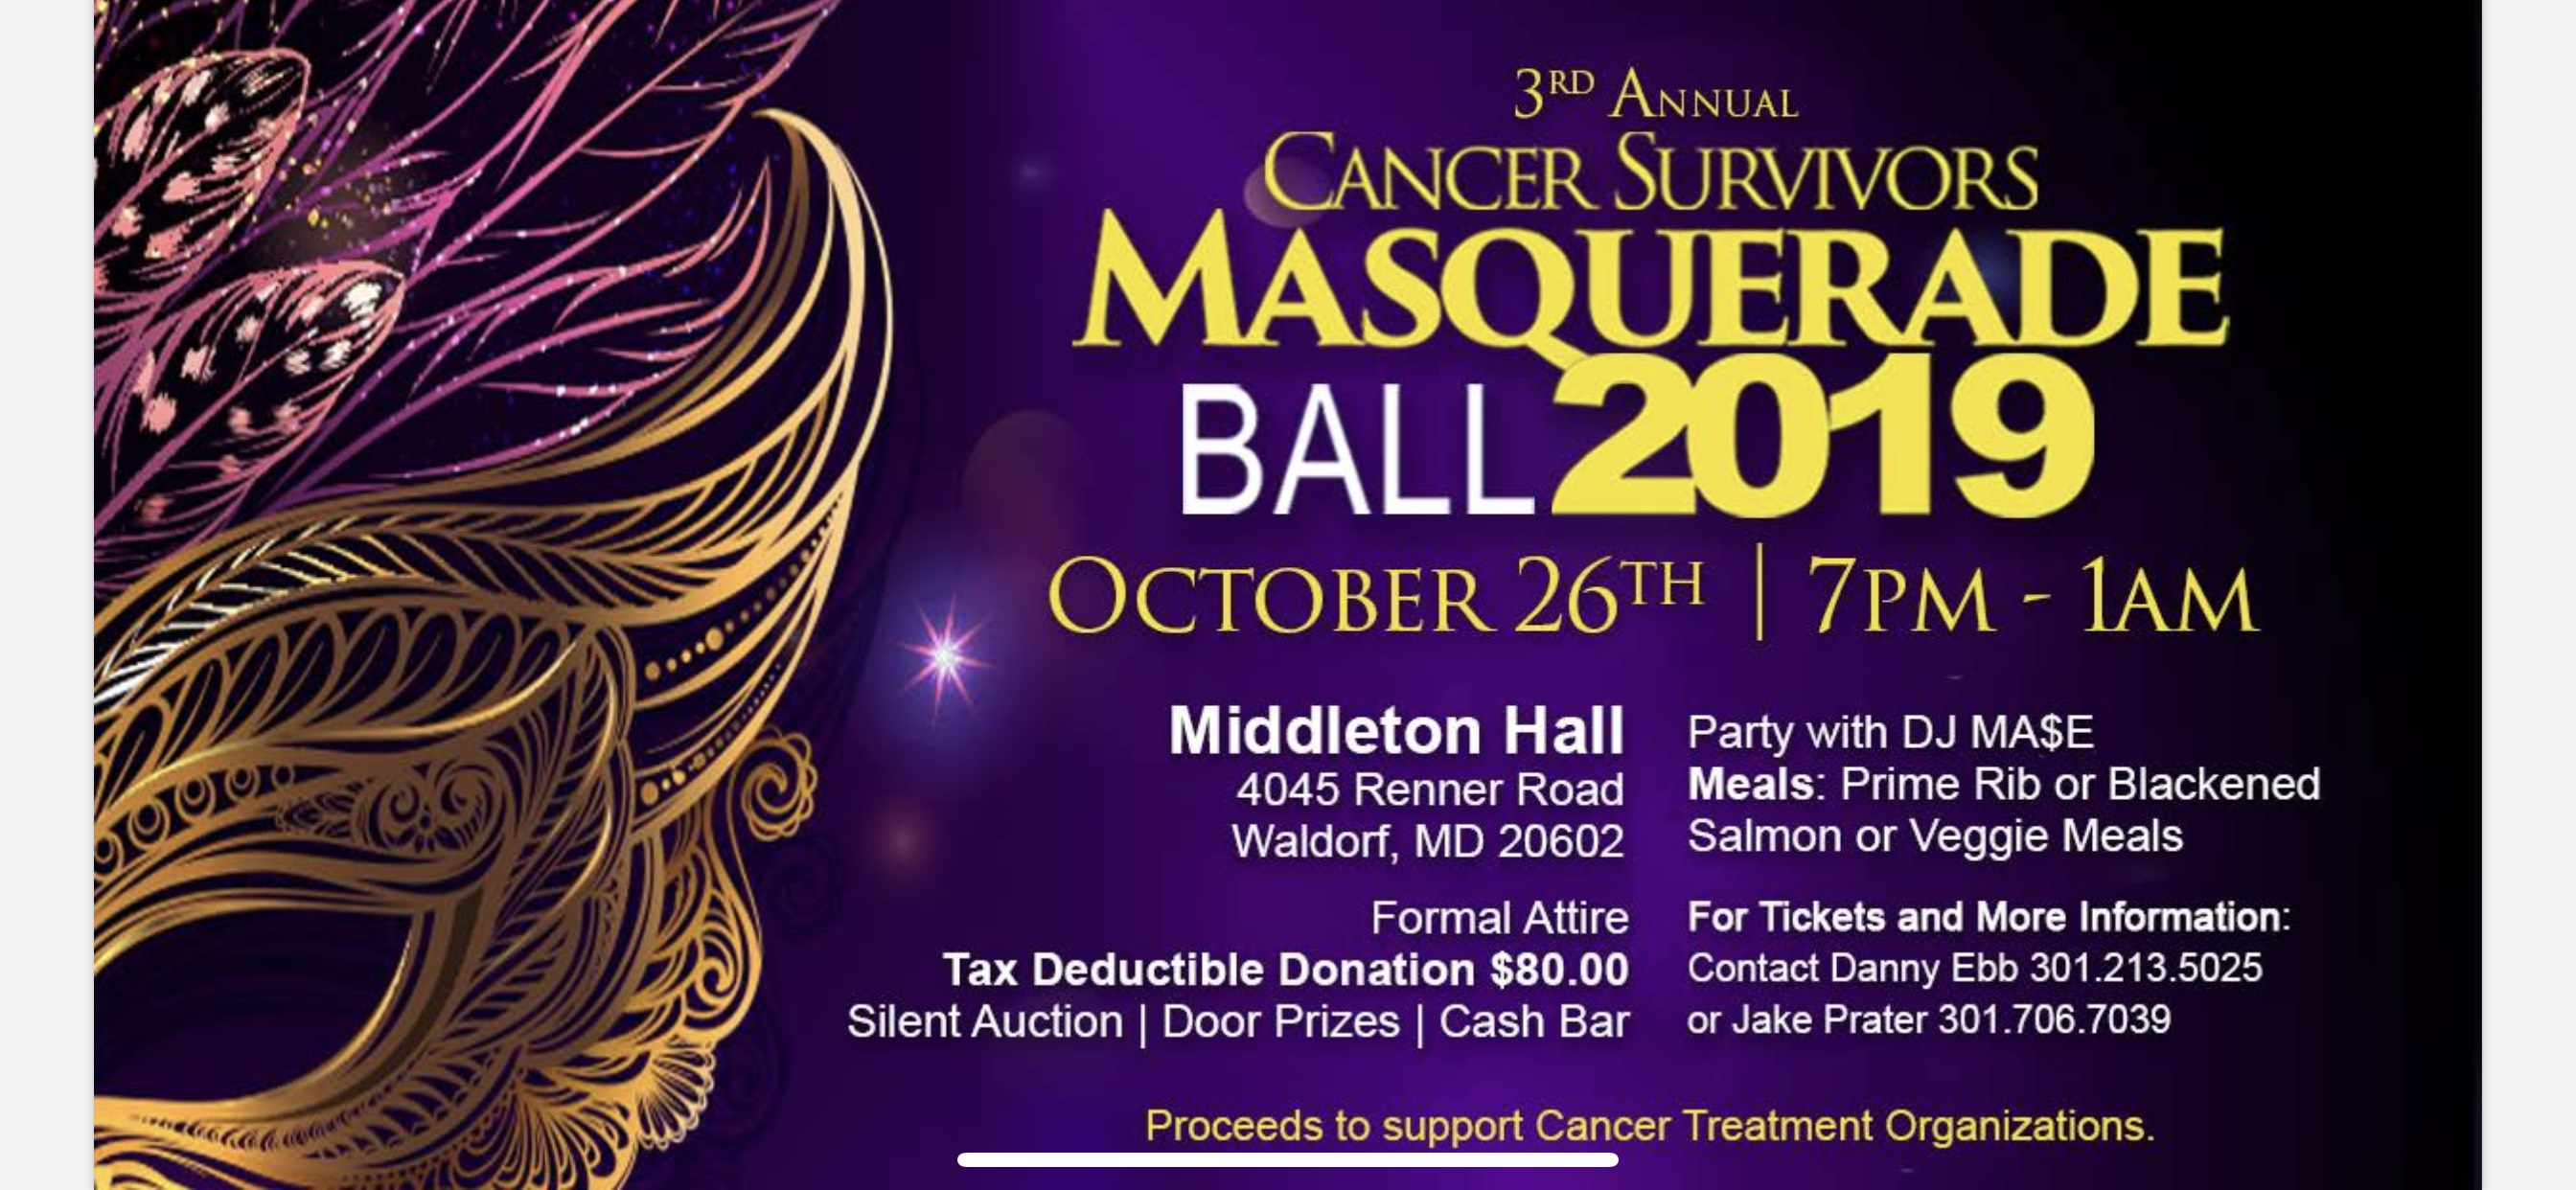 Cancer Survivors Masquerade Ball 2019 Tickets, Sat, Oct 26